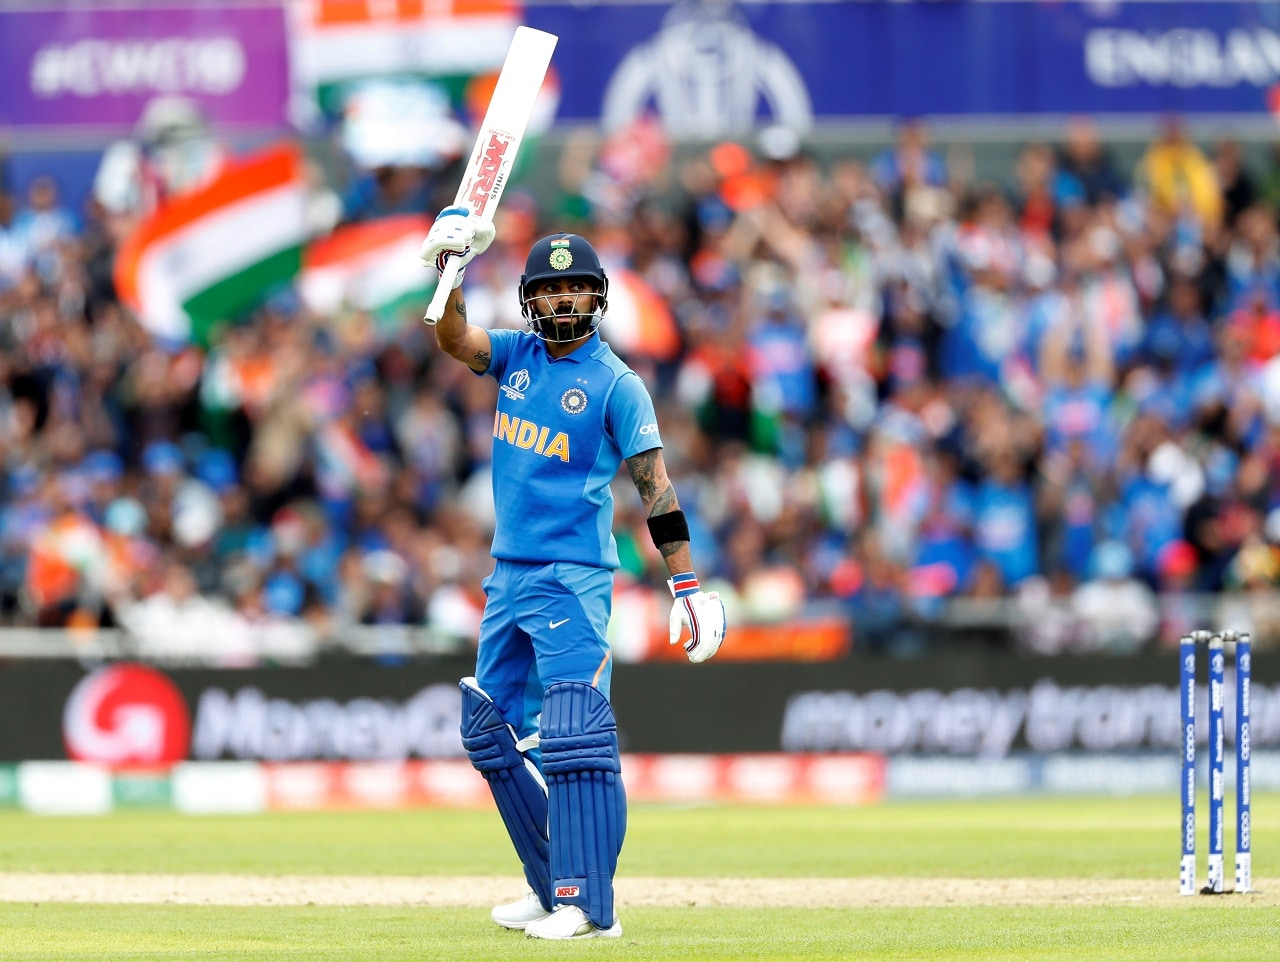 Cricket - ICC Cricket World Cup - India vs Pakistan - Emirates Old Trafford, Manchester, Britain - June 16, 2019 India's Virat Kohli celebrates his 50 Action Images via Reuters/Lee Smith